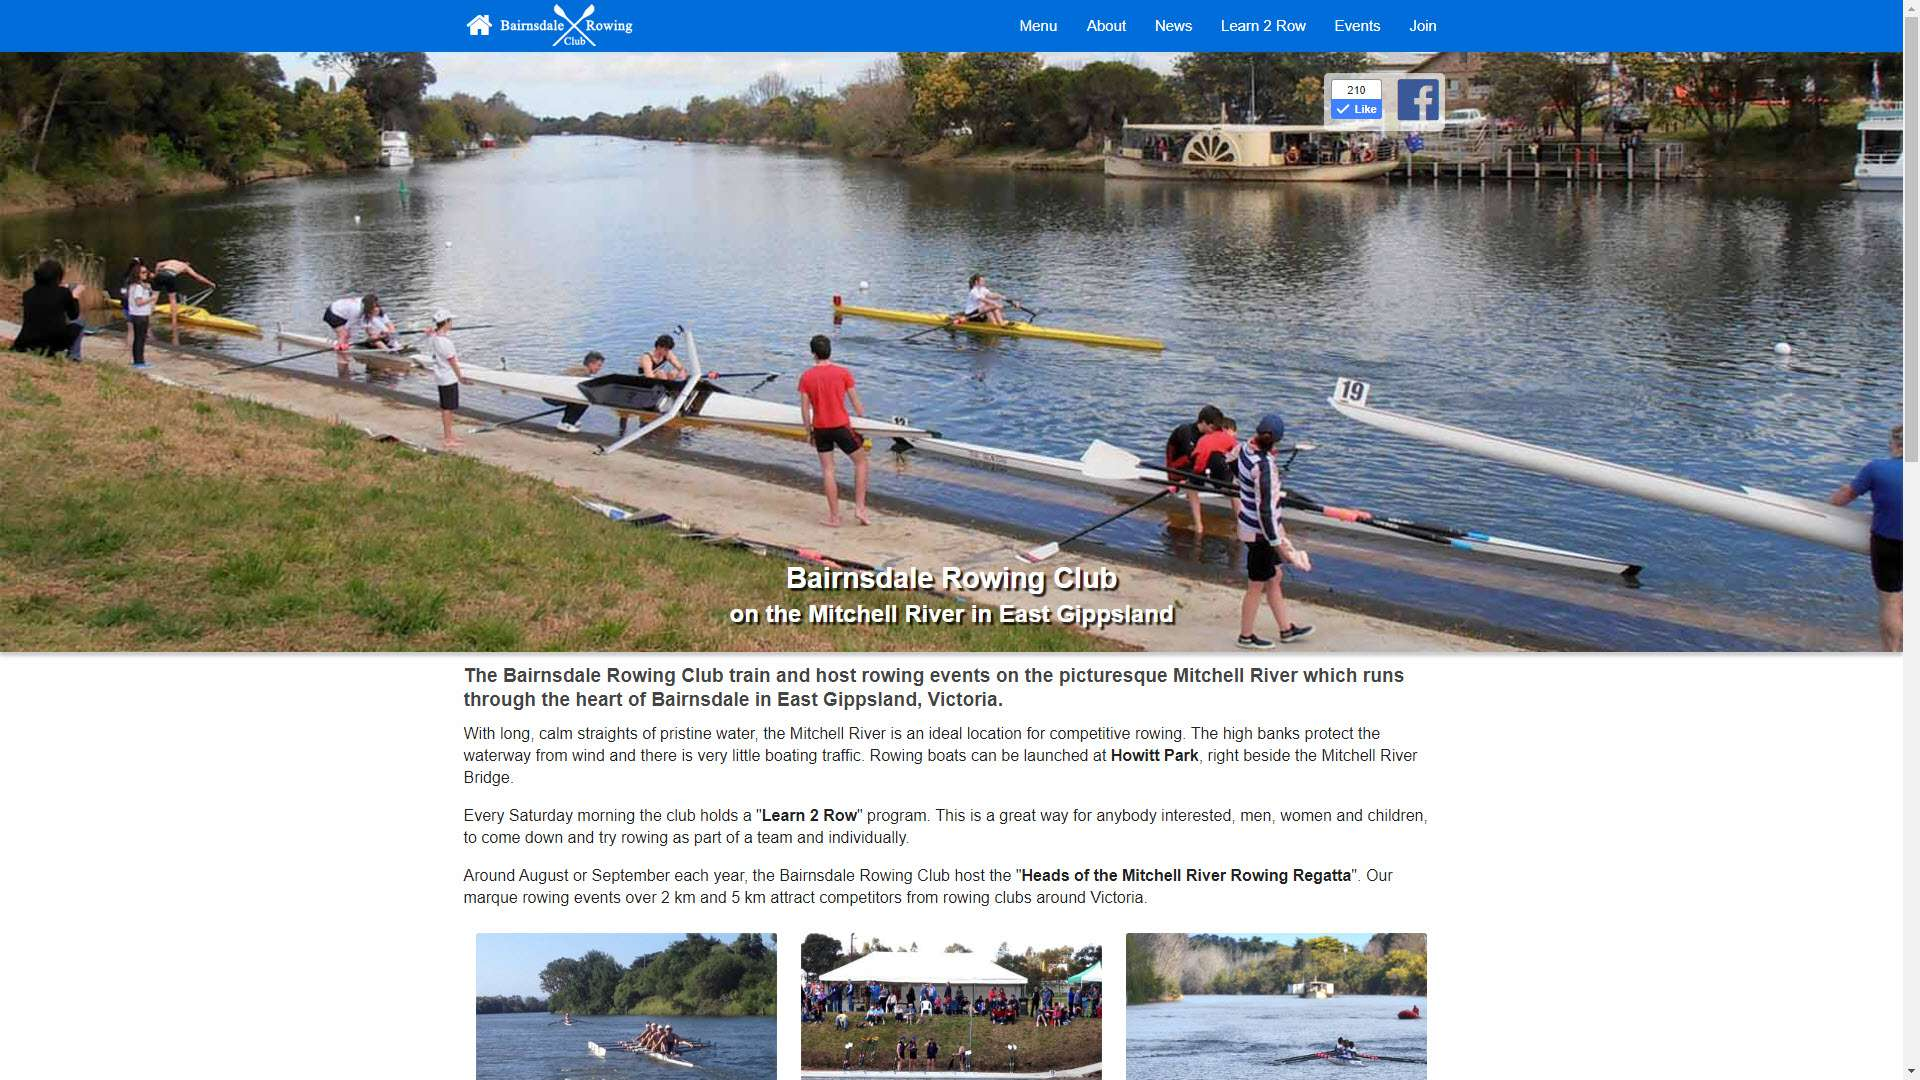 Bairnsdale Rowing Club website